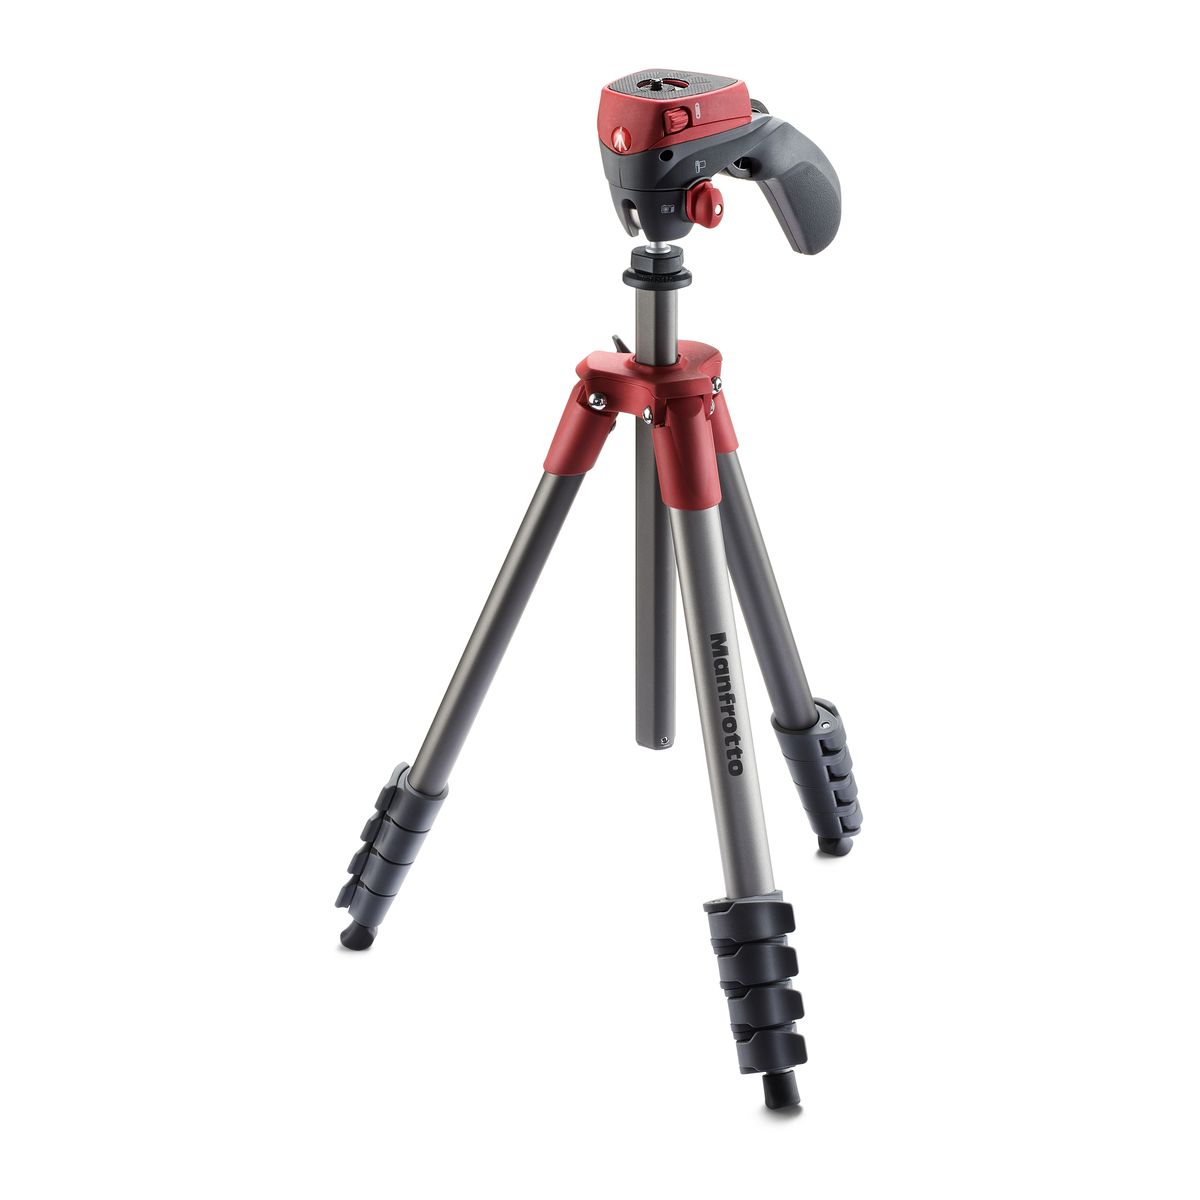 Tr�pied manfrotto compact action rouge - 5% de remise imm�diate avec le code : school5 (photo)